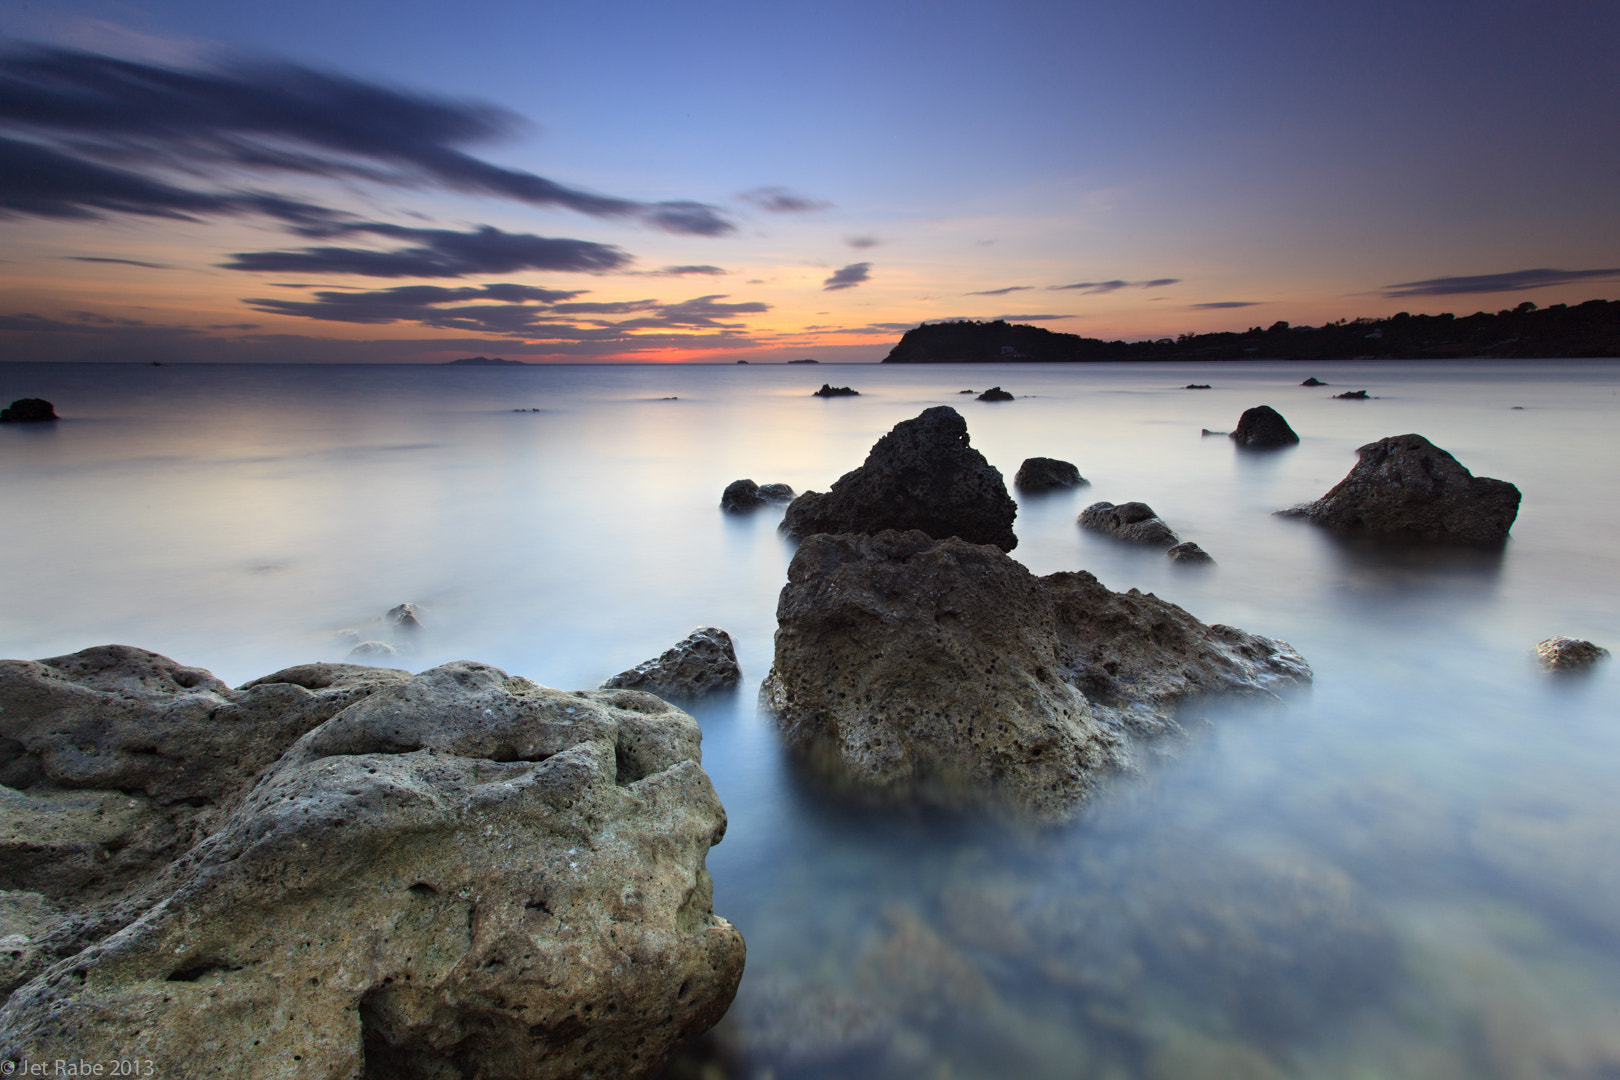 Photograph Nasugbu, Batangas by Jet Rabe on 500px